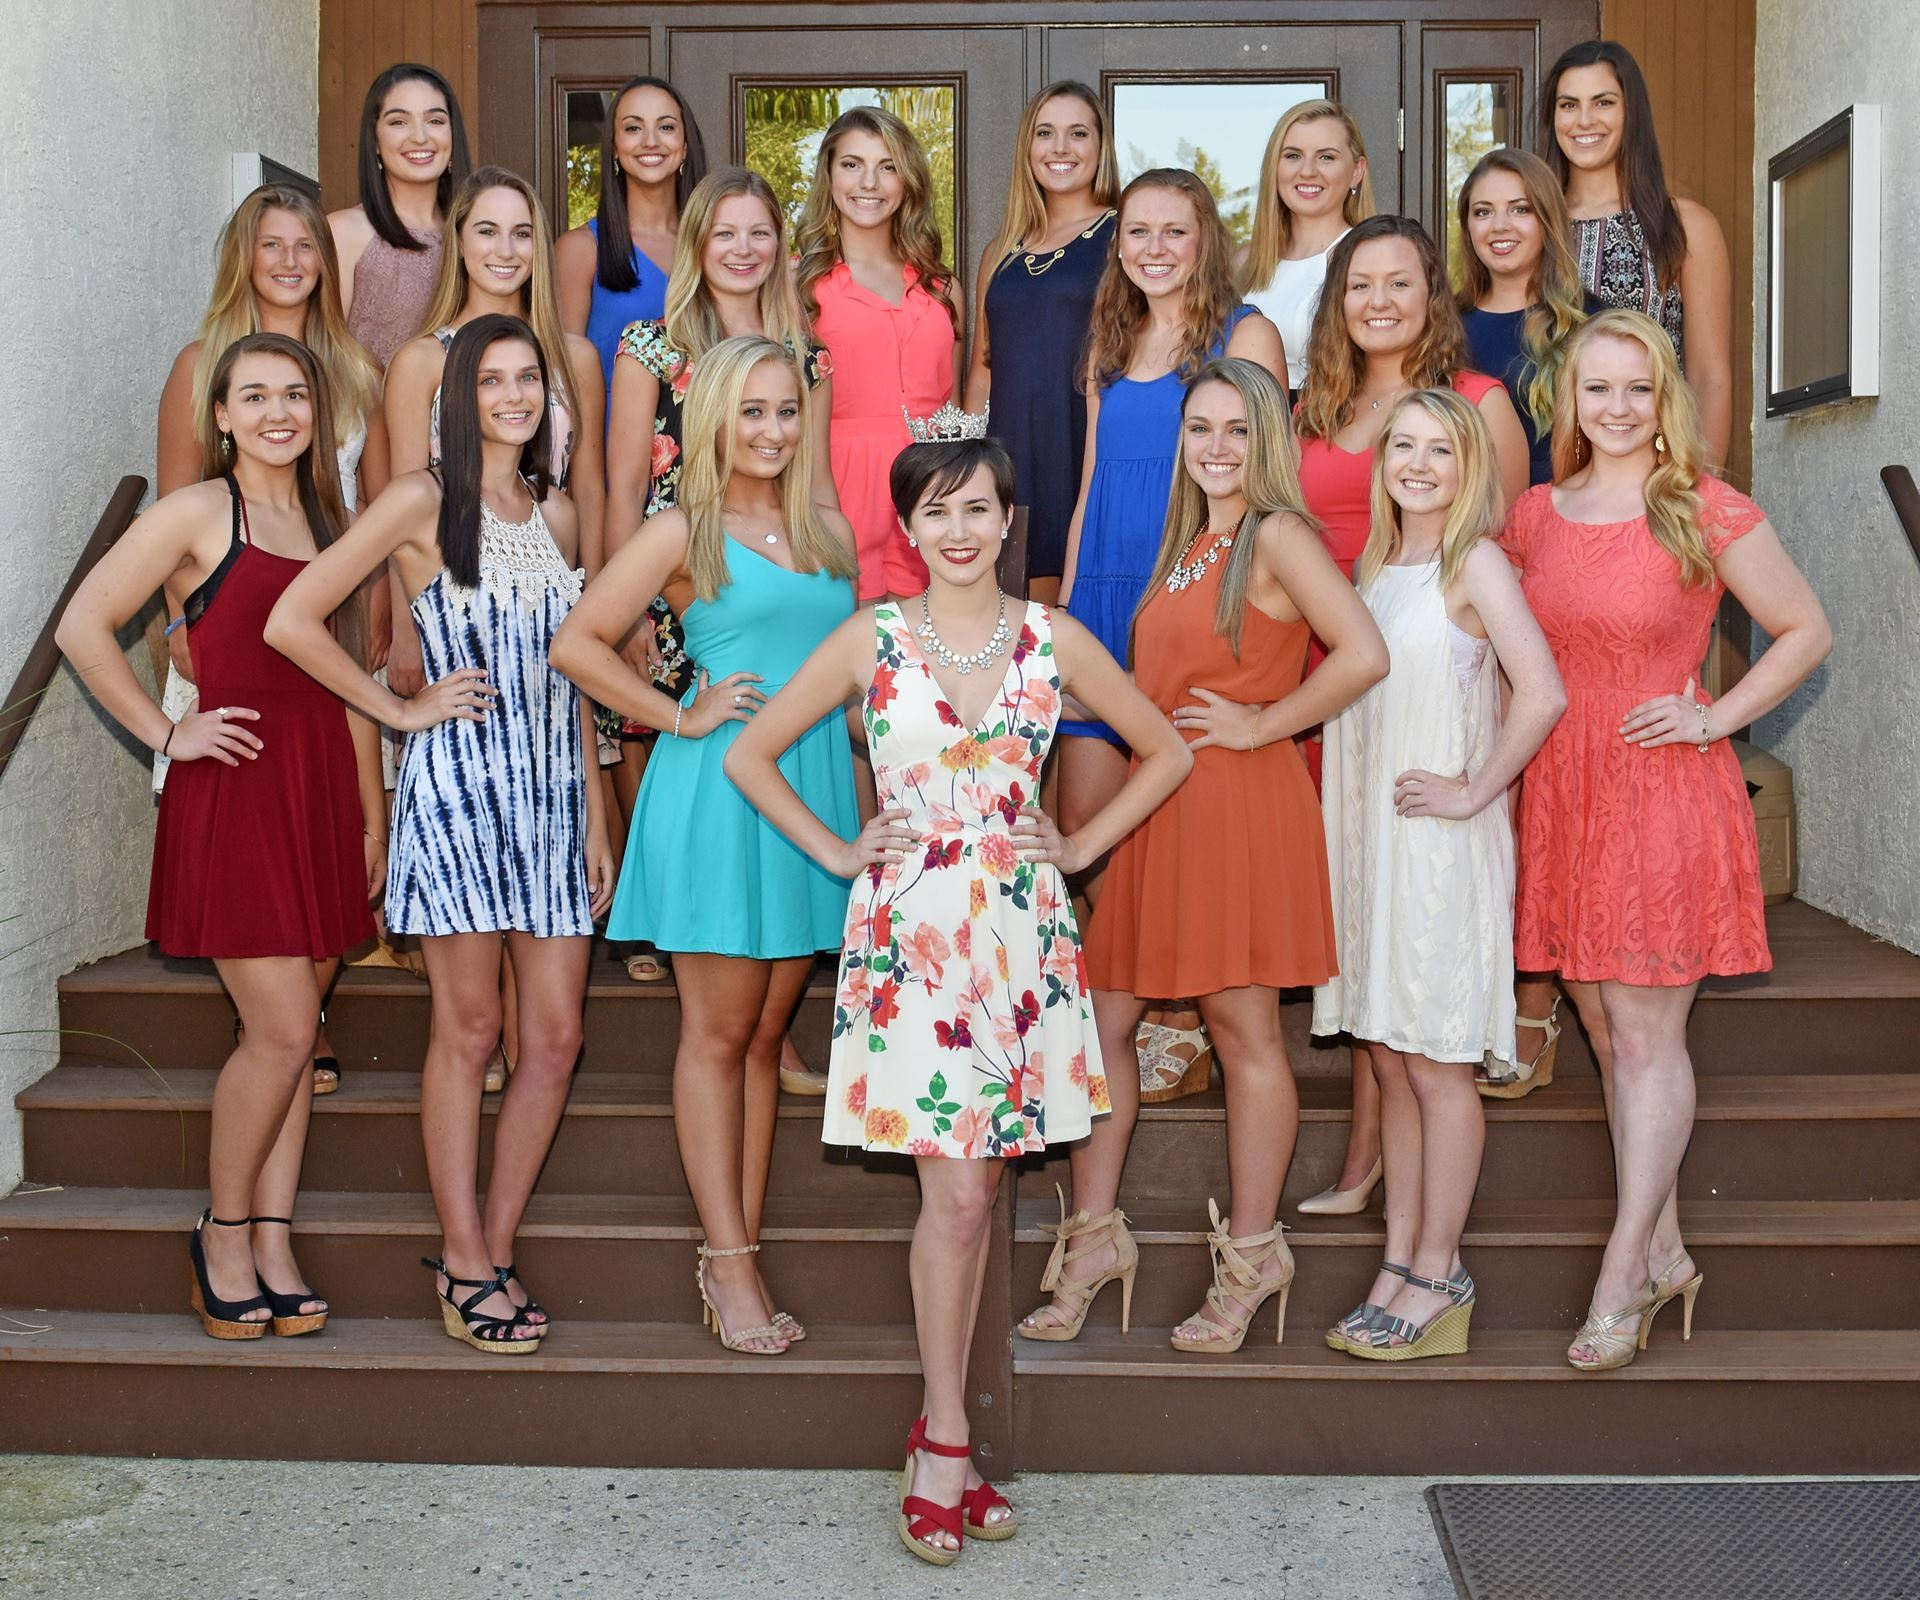 Miss Ocean City 2016 with the Contestants for Miss OC 2017! Photo Credit to David Nahan Ocean City Sentinel, the official photographer for Miss Ocean City